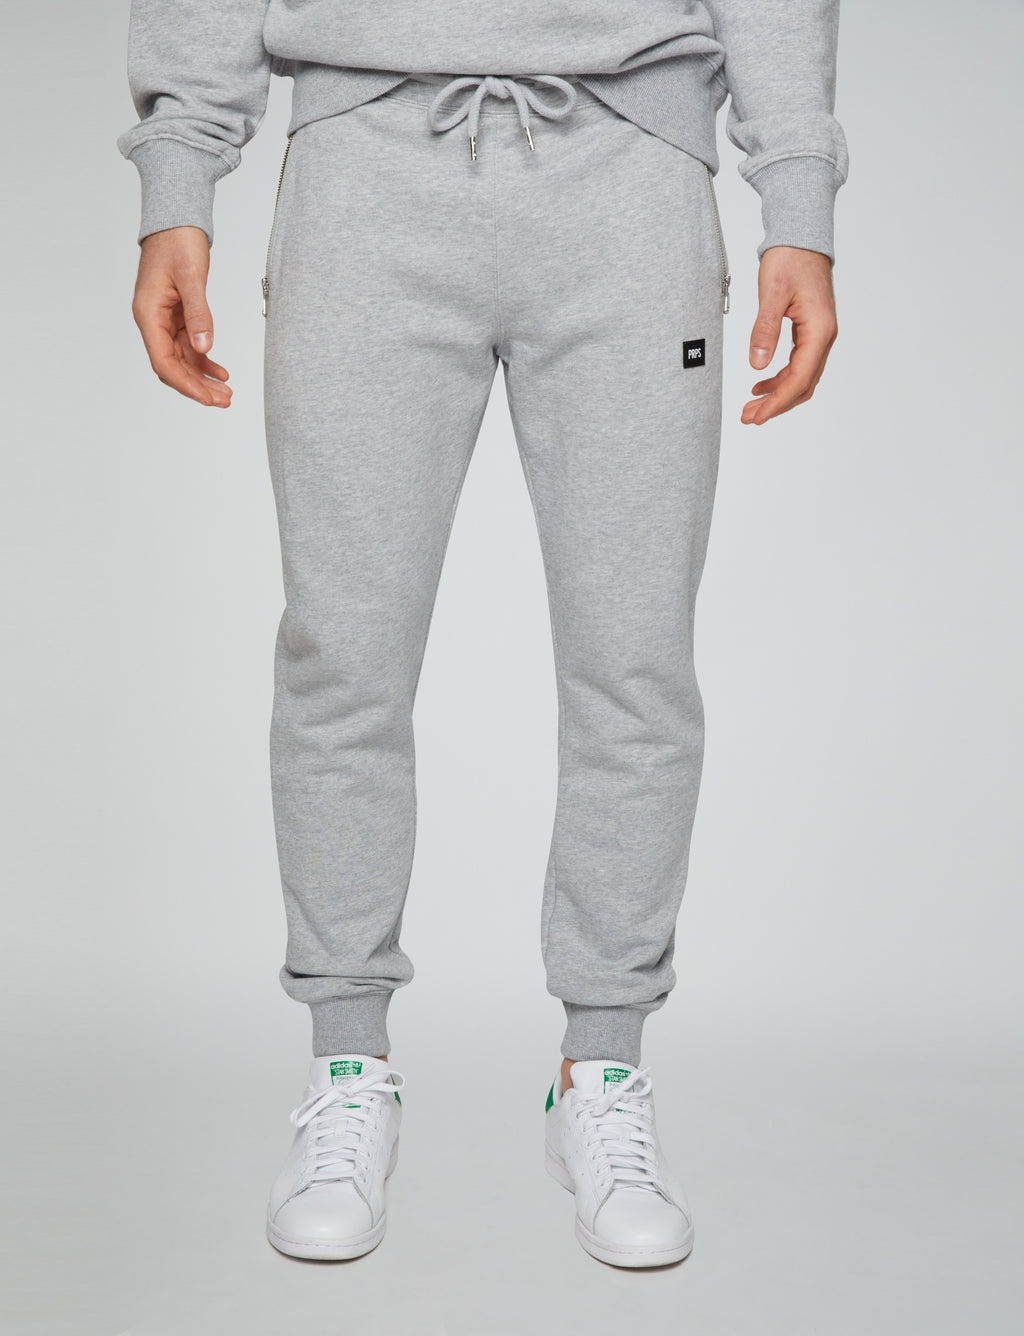 Prps - Church Sweatpants - Pant - Prps